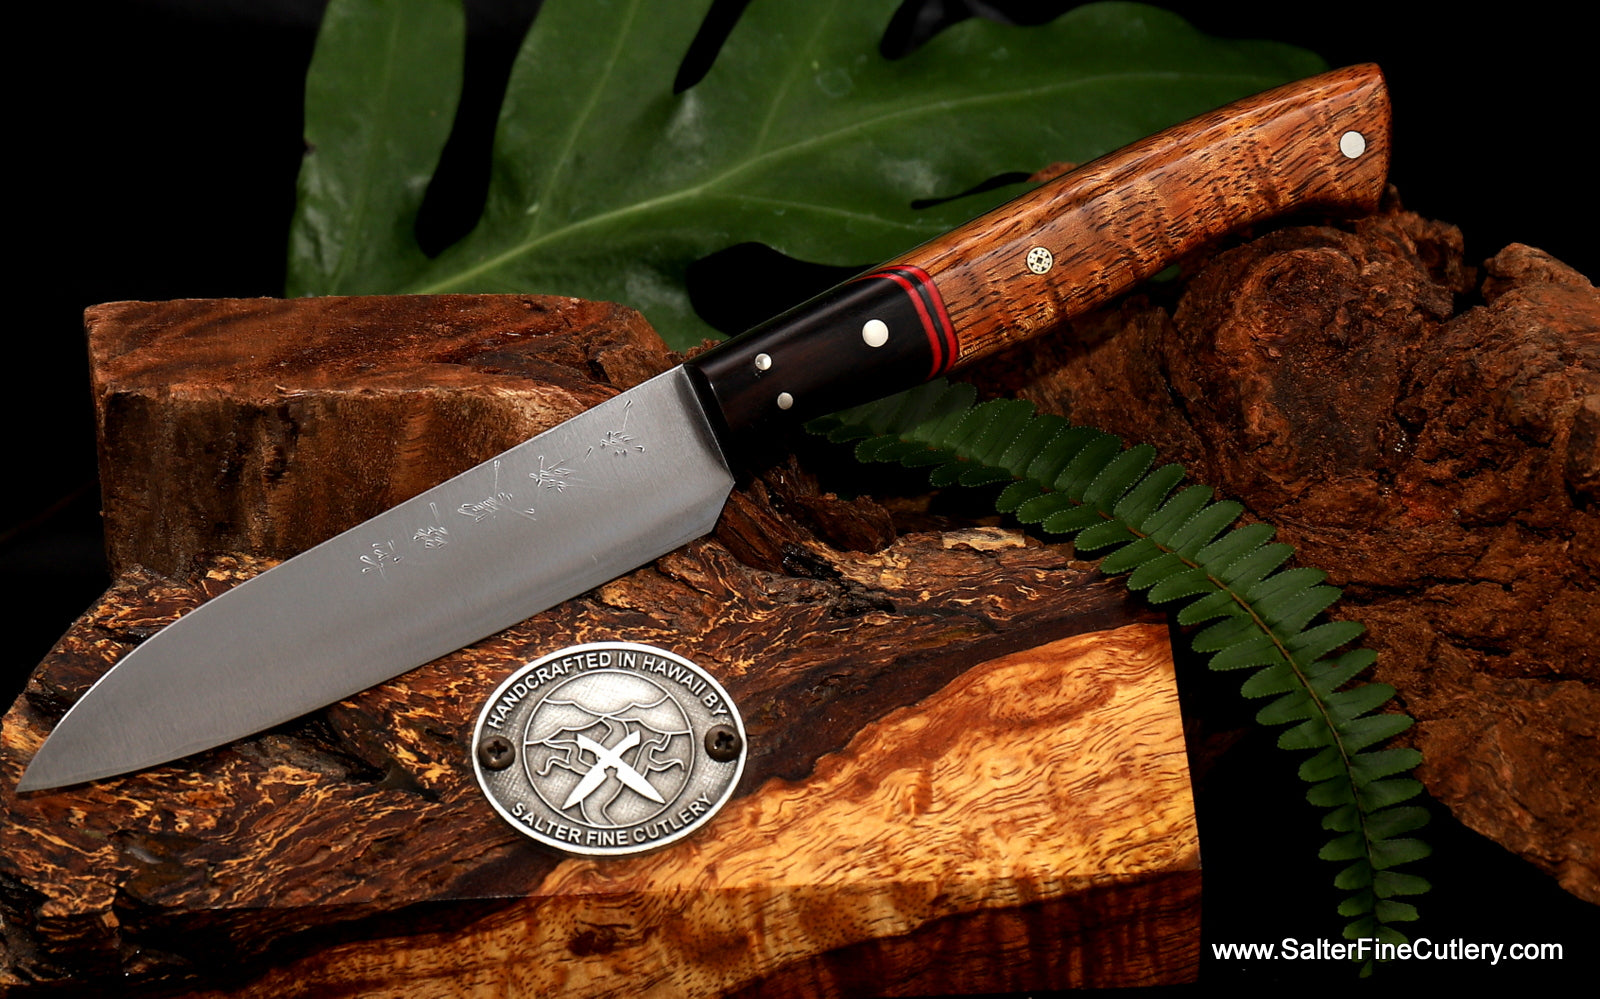 110mm paring or small utility knife with hand-forged blade from Salter Fine Cutlery of Hawaii